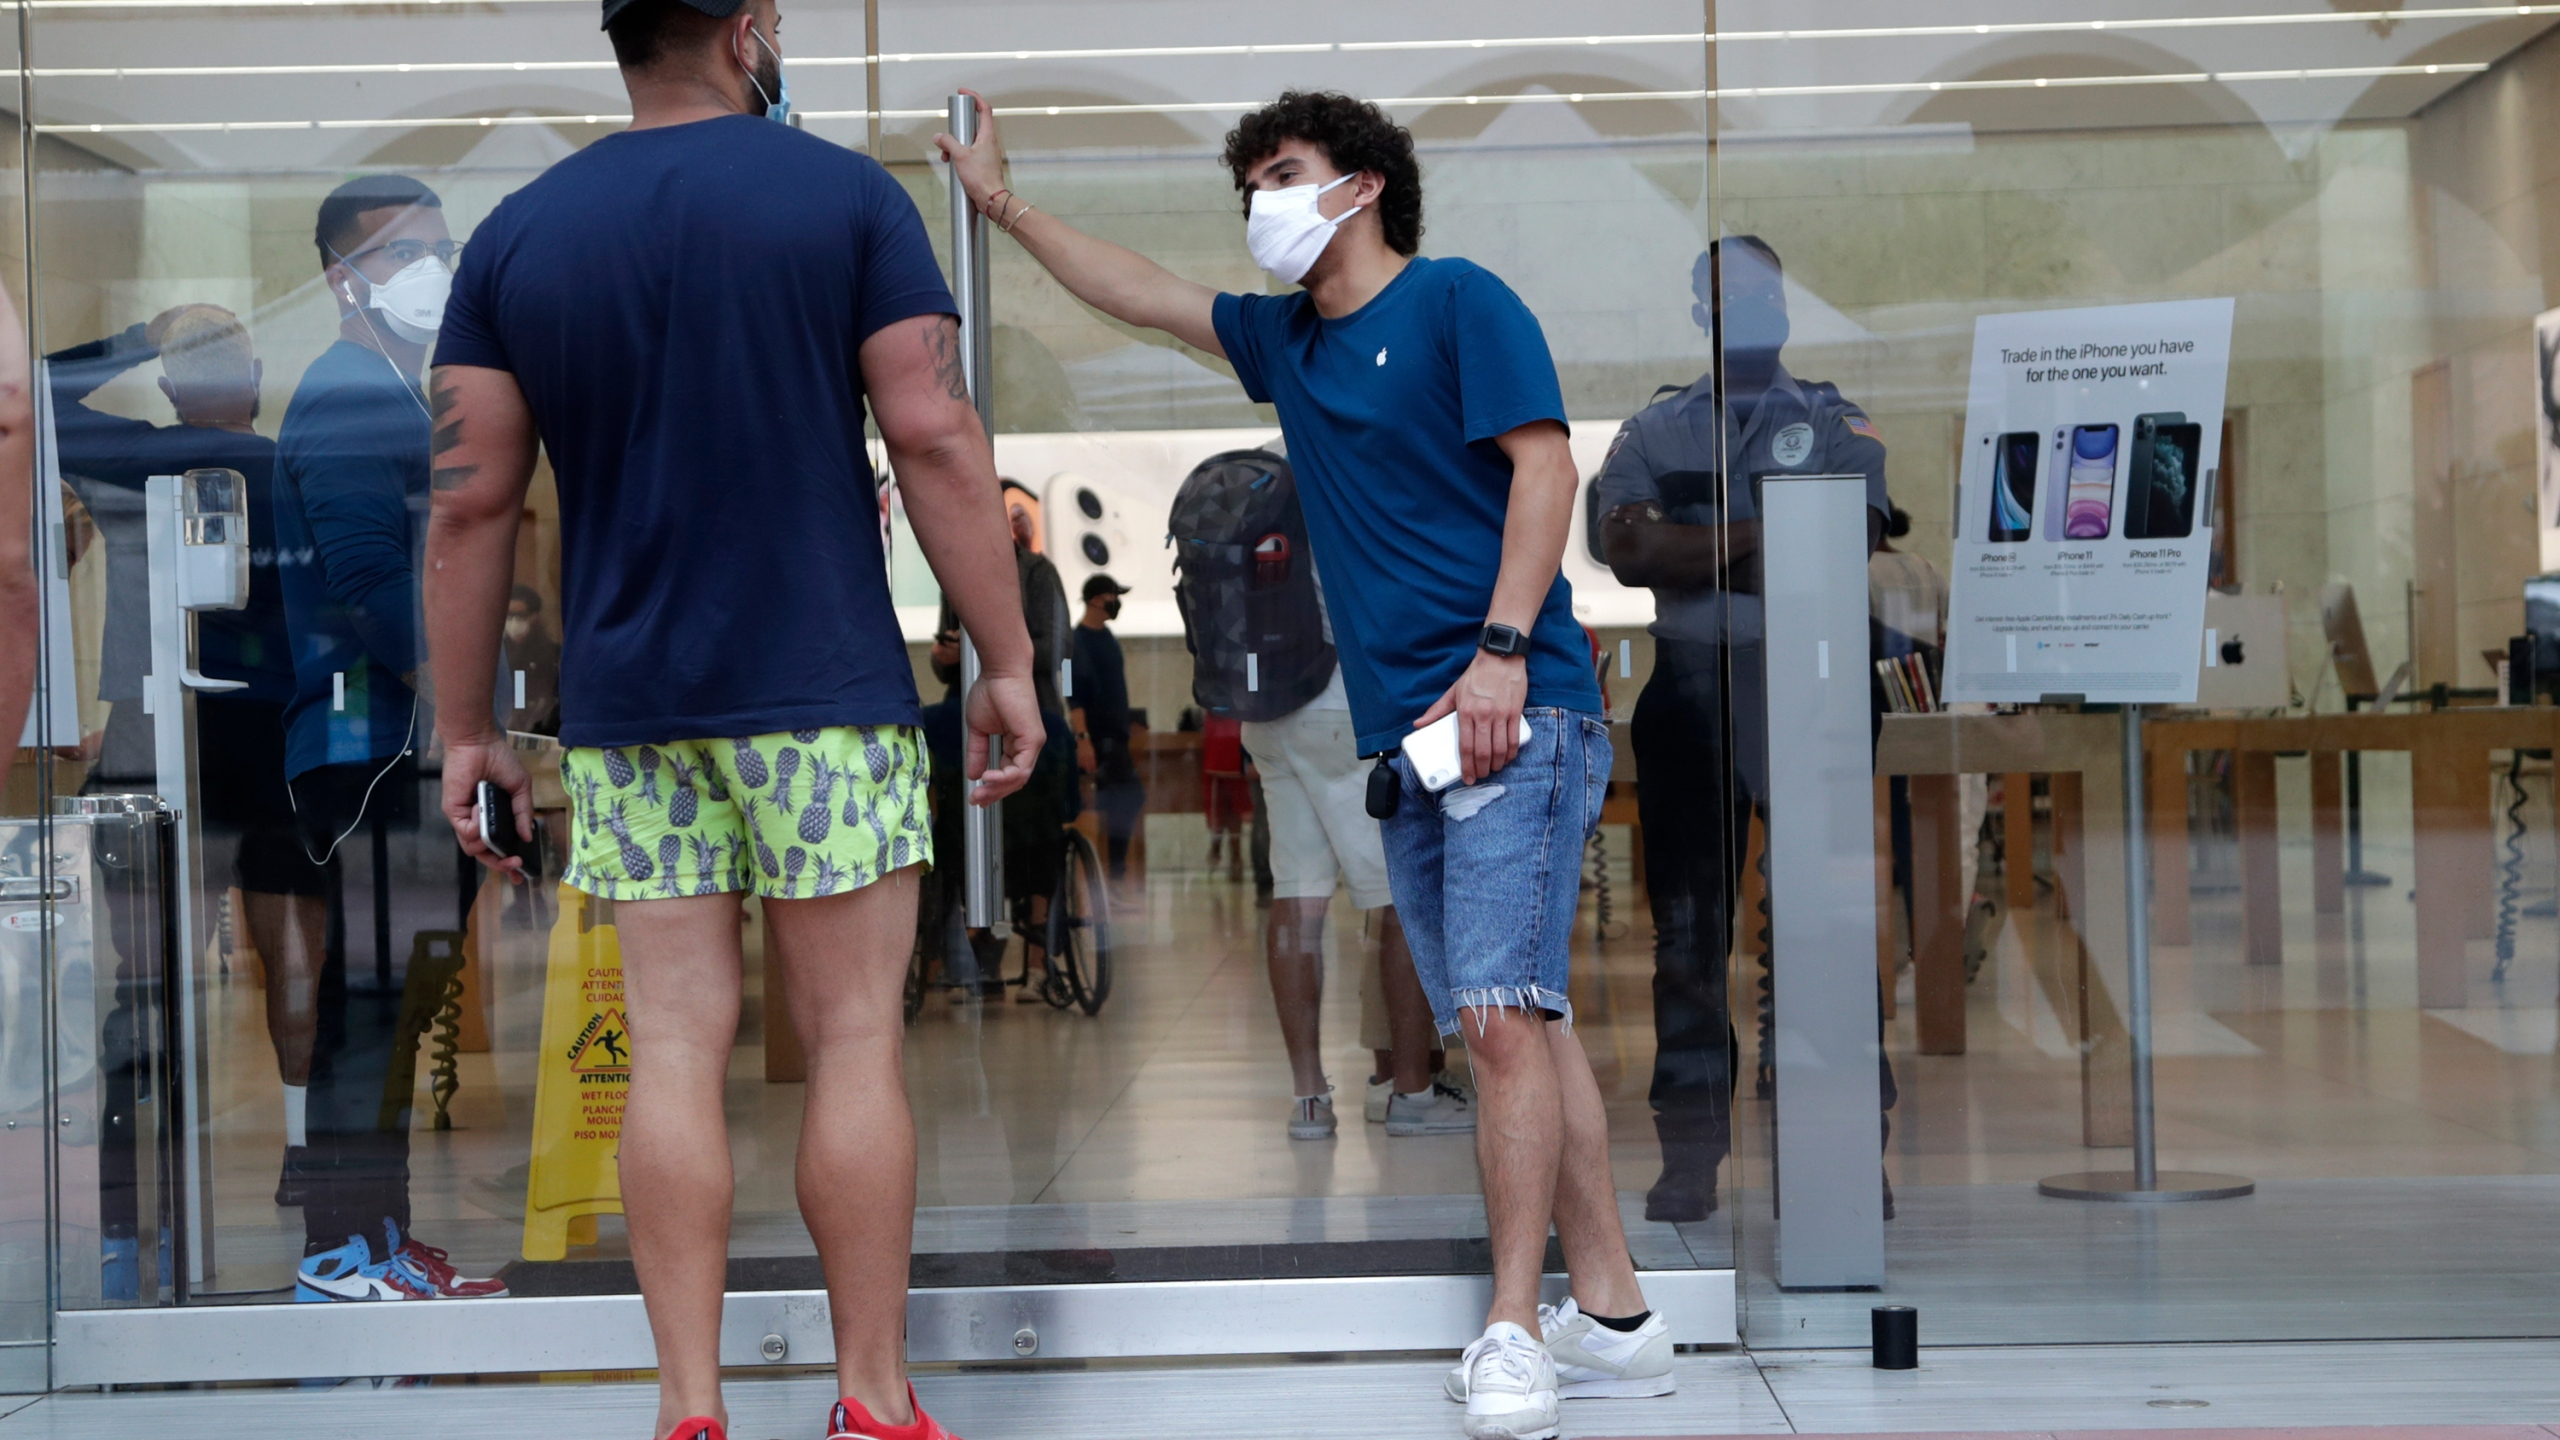 An employee wearing a protective face covering, right, monitors the flow of customers at an Apple retail store in Miami Beach on June 17, 2020. (Lynne Sladky/Associated Press)